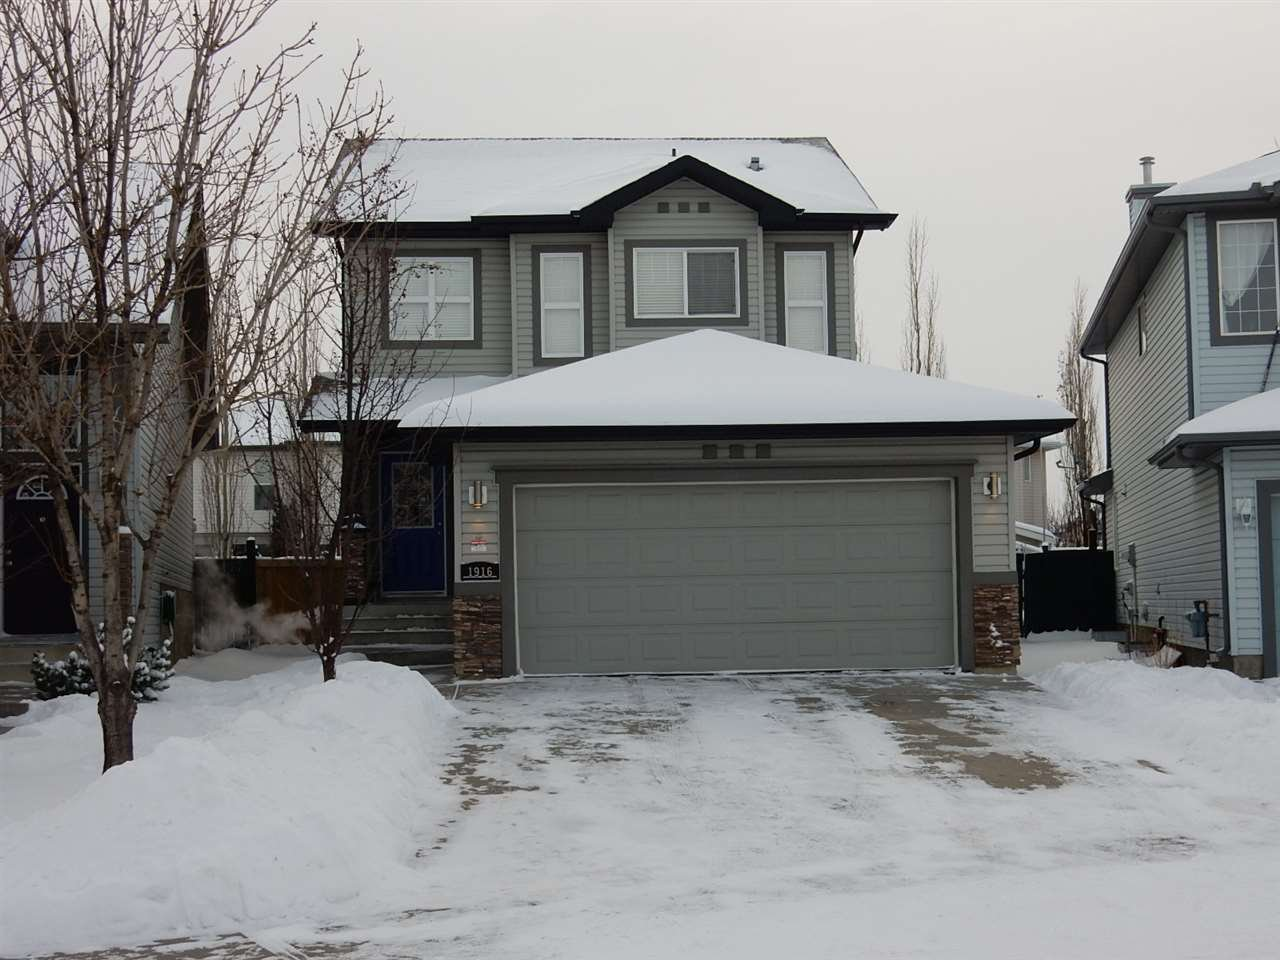 Main Photo: 1916 Garnett Way in Edmonton: Zone 58 House for sale : MLS®# E4186663